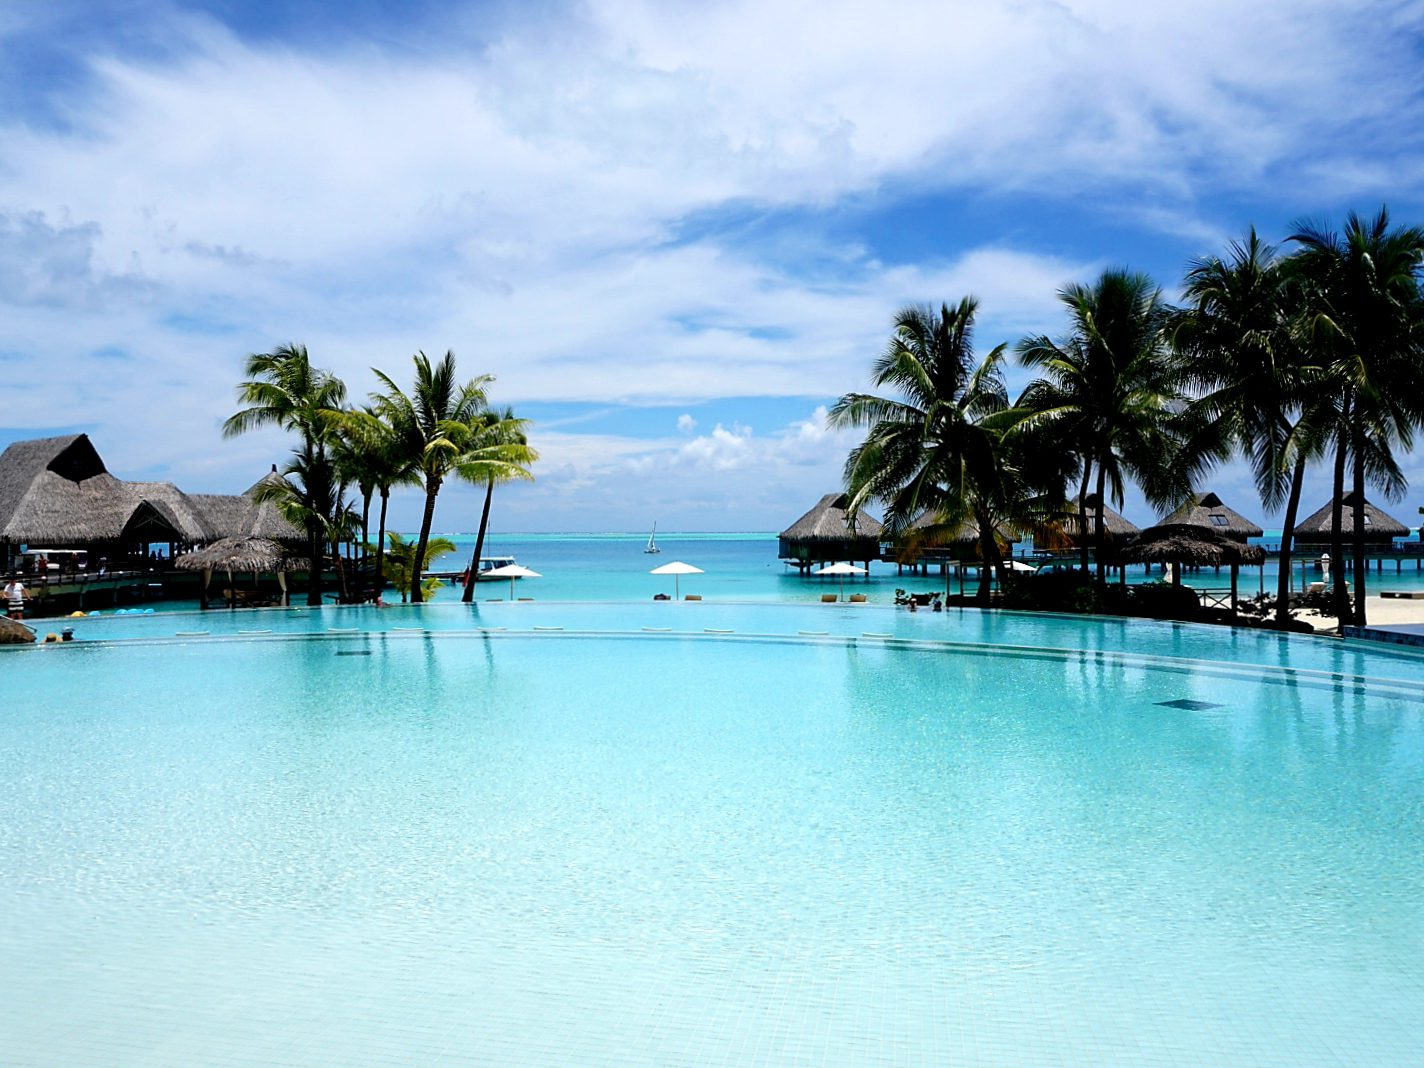 Swimming pool at the Conrad Bora Bora Nui